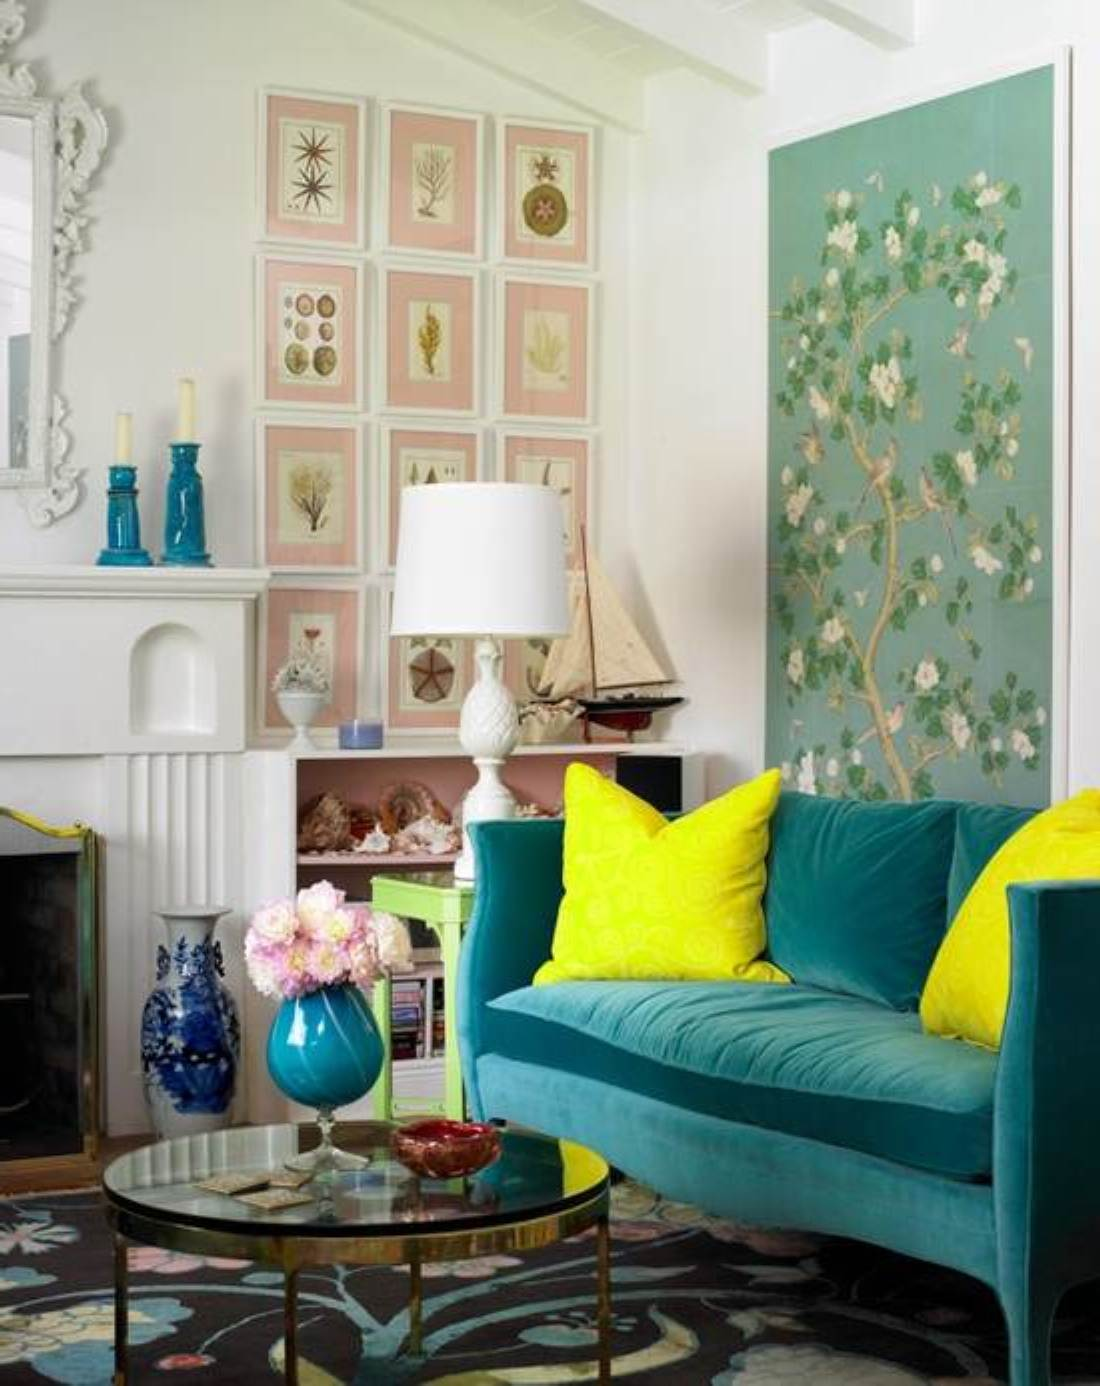 Living room decor small space Design ideas for small living room